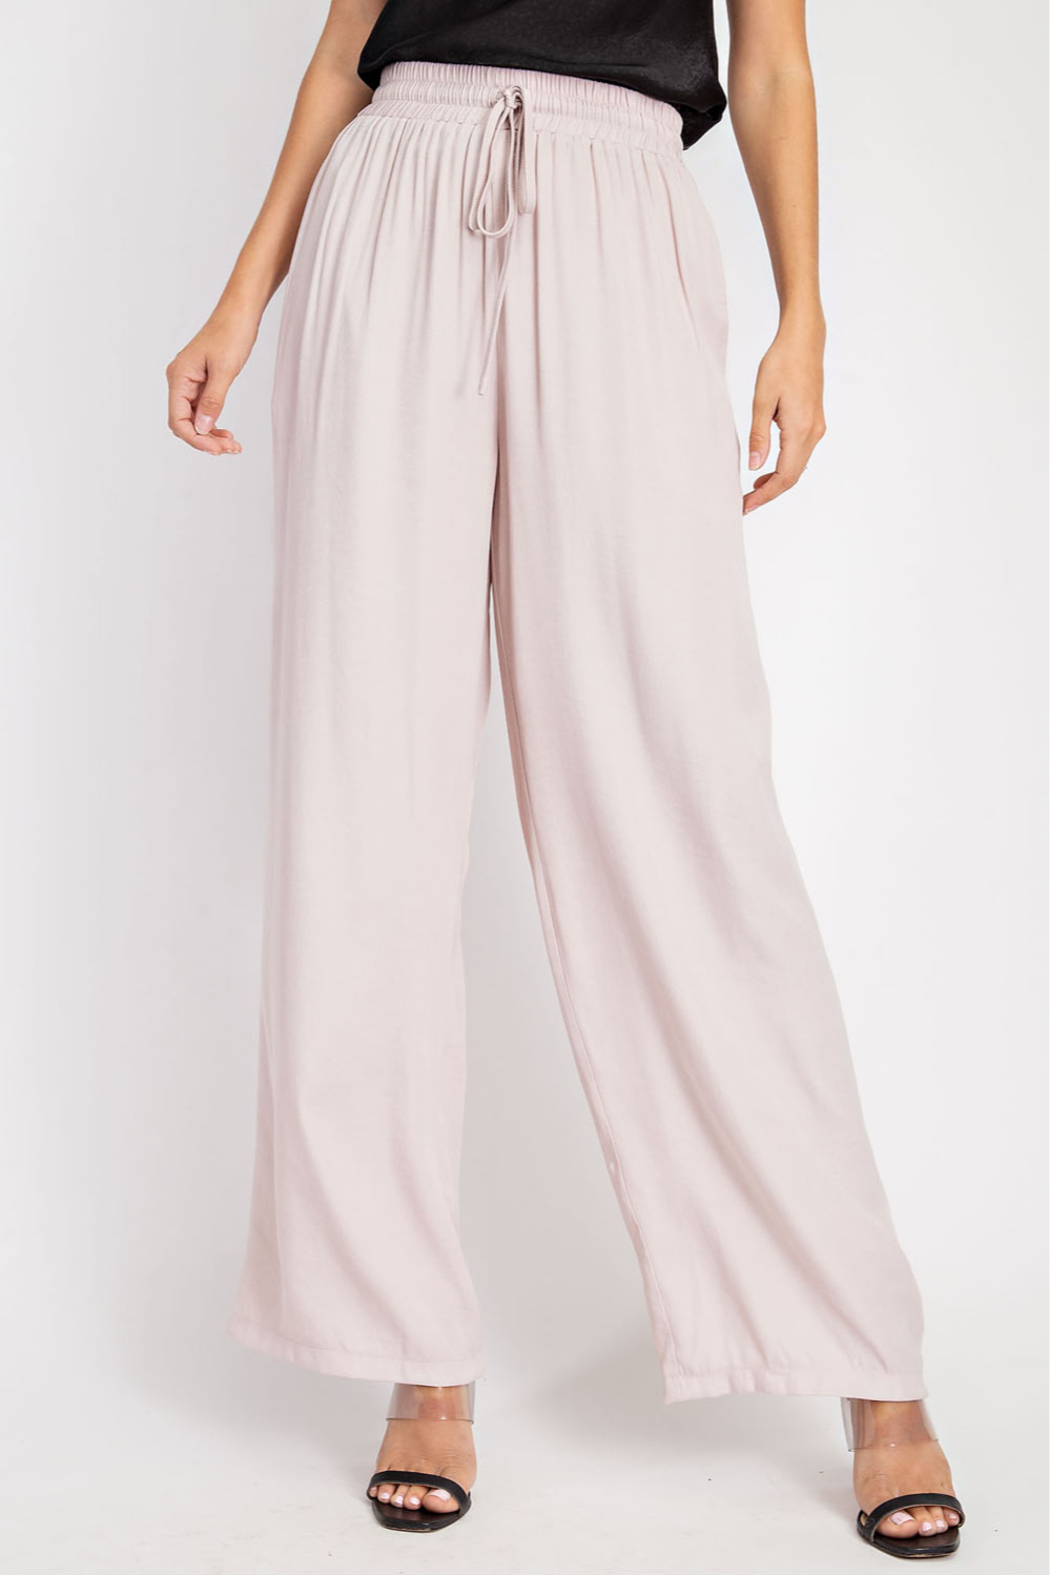 Glam High Waist Flowy pants - Front Cropped Image